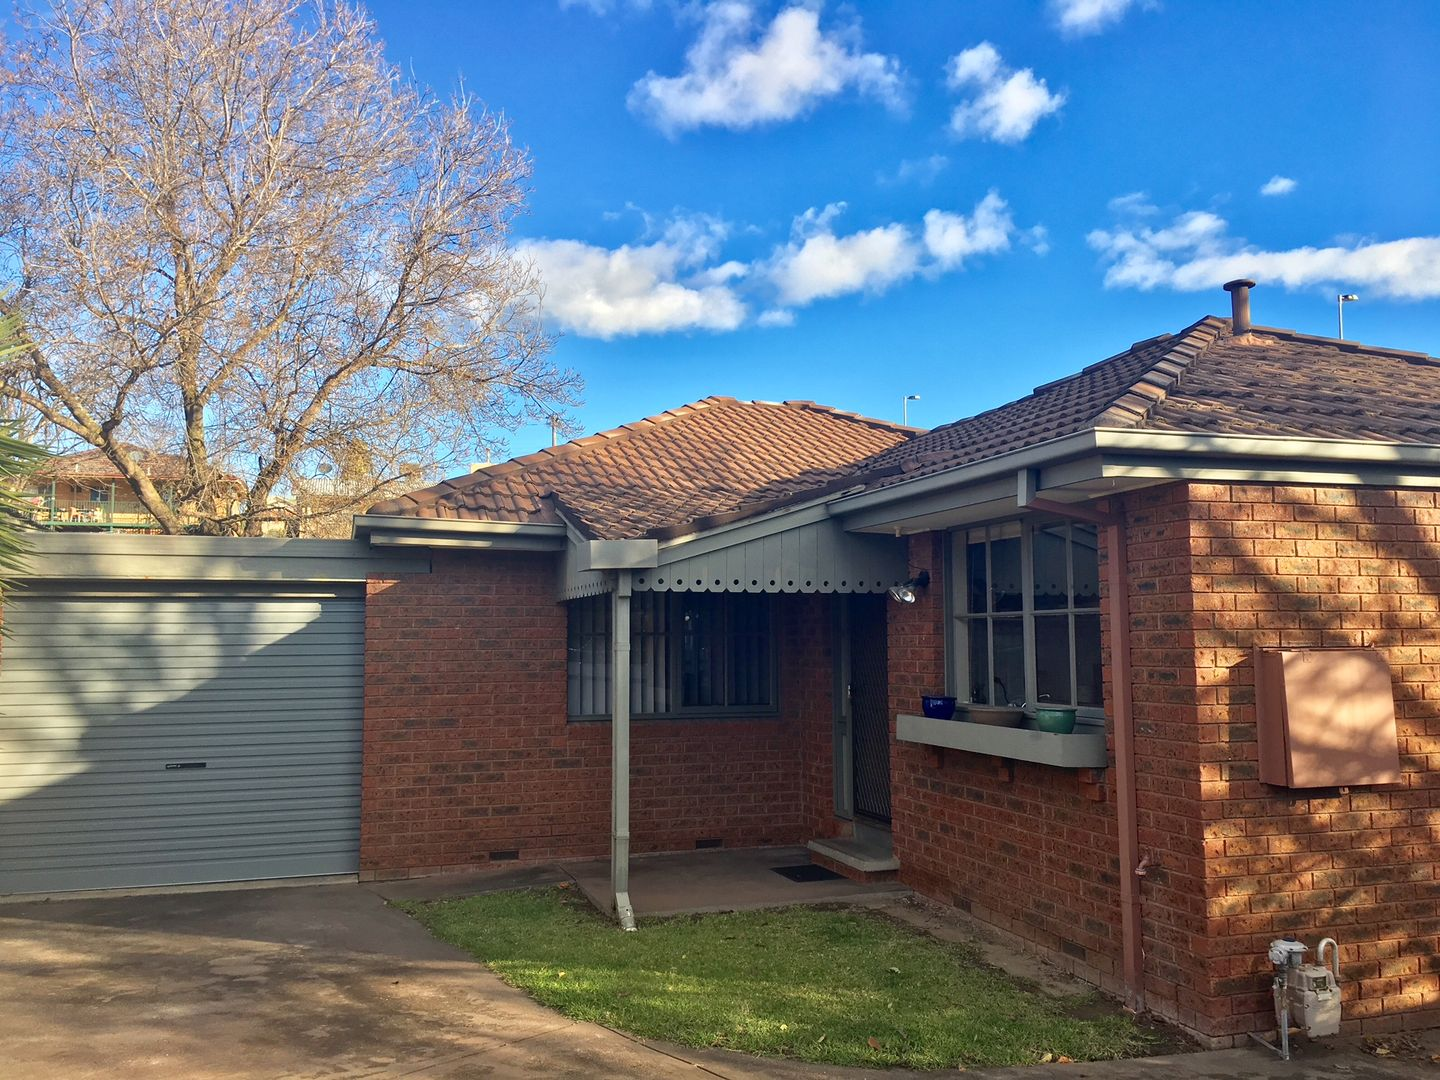 2/363 Woodstock  Court, Albury NSW 2640, Image 0